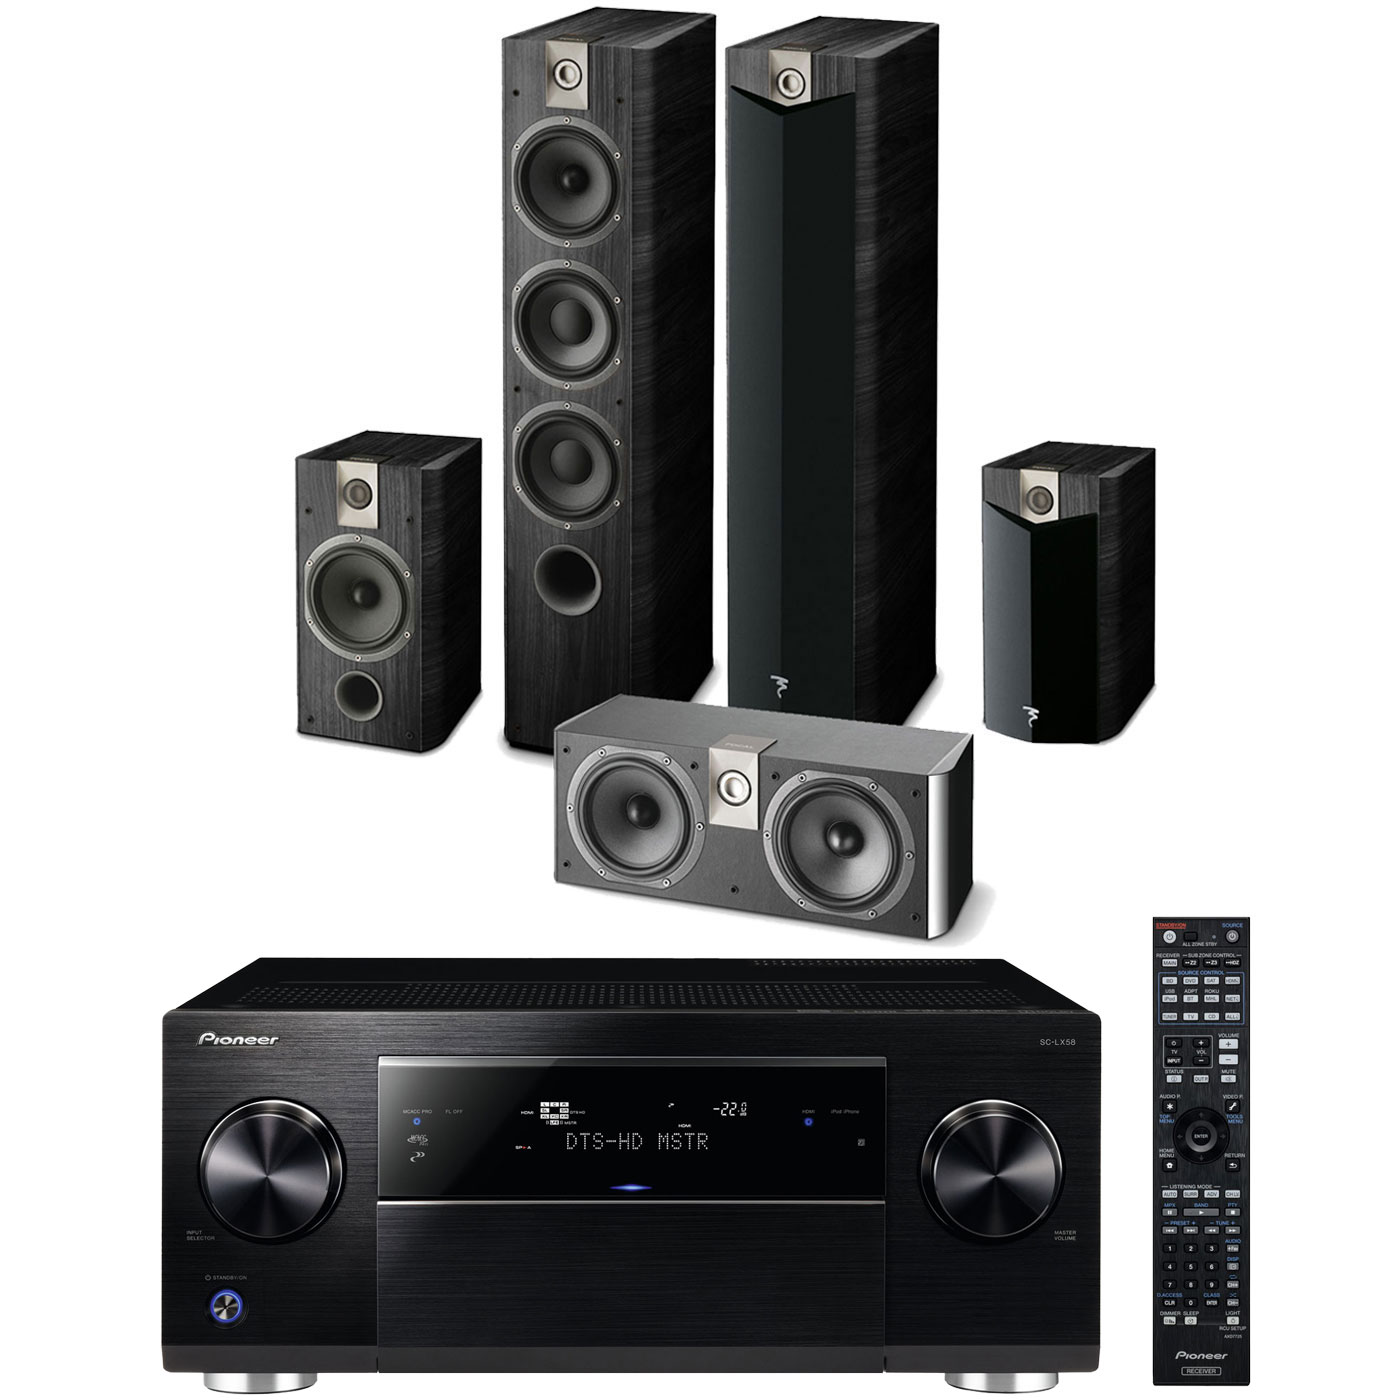 pioneer sc lx58k noir focal chorus 727 v2 706 v2 cc 700 pioneer sc lx58k focal 727v. Black Bedroom Furniture Sets. Home Design Ideas